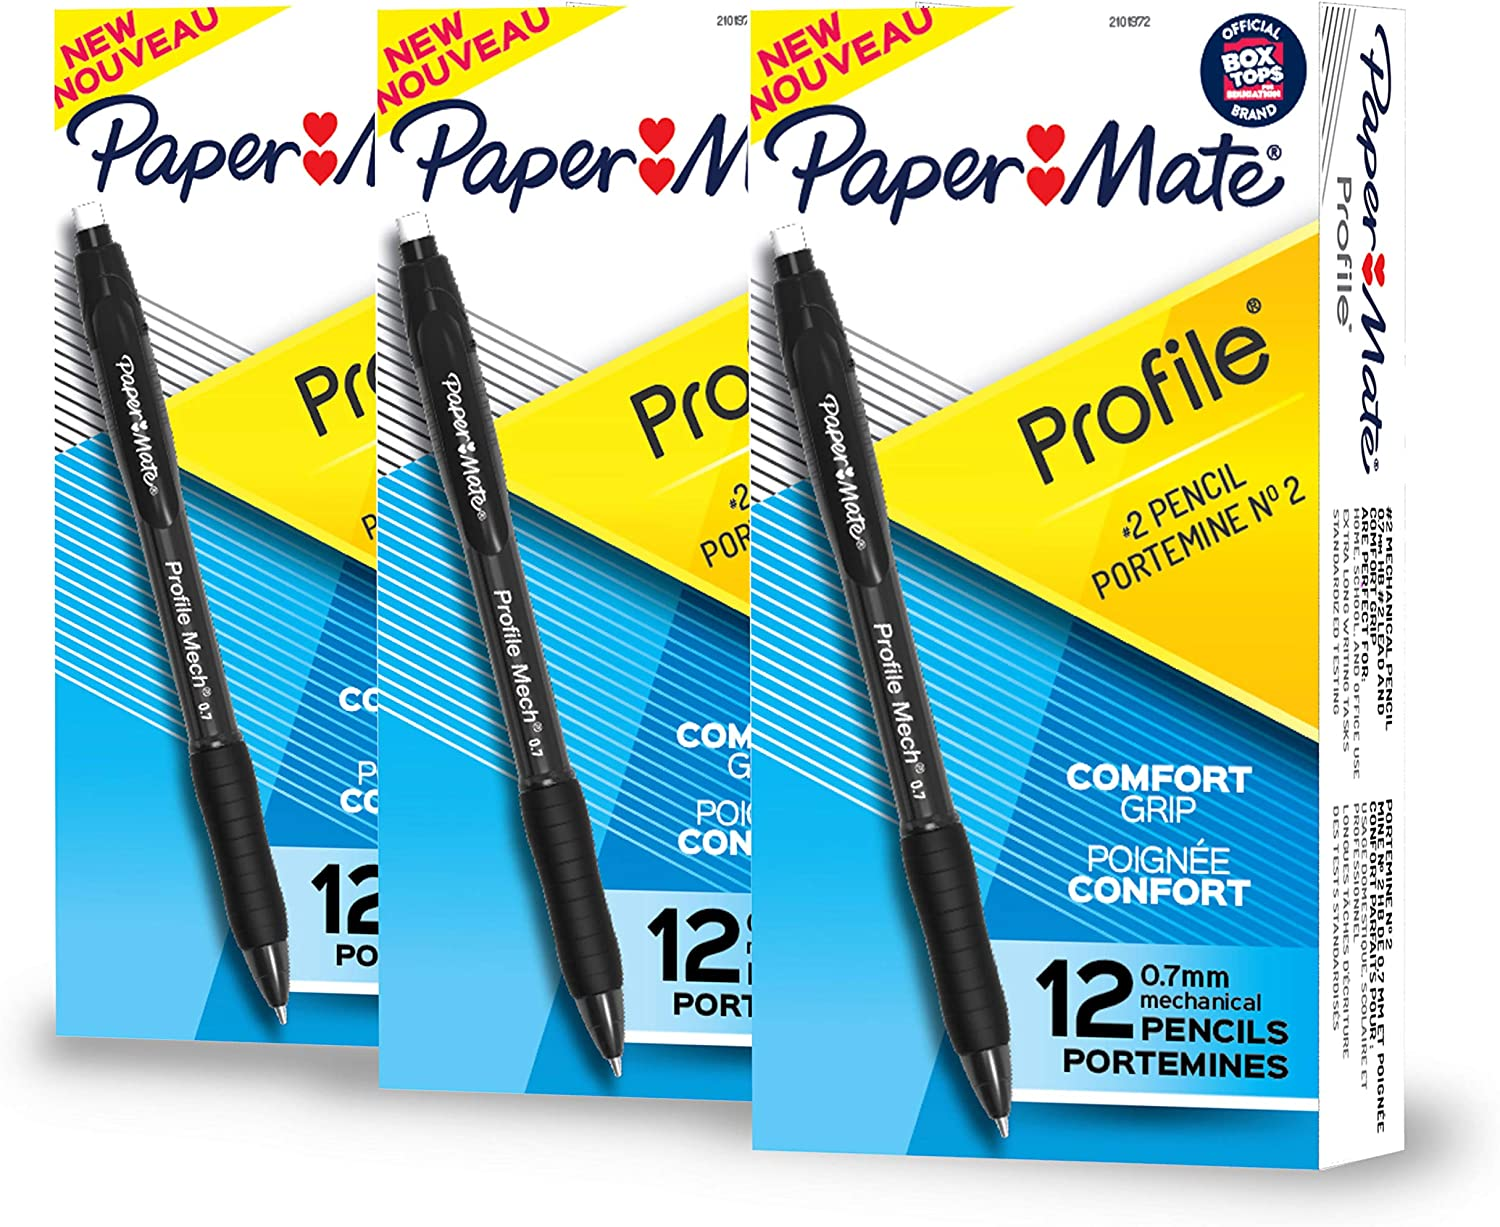 Paper Mate Profile Mech Mechanical Pencil Set, 0.7mm #2 Pencil Lead, Black Barrel, Great for Home, School, Office Use (36 Count) : Office Products